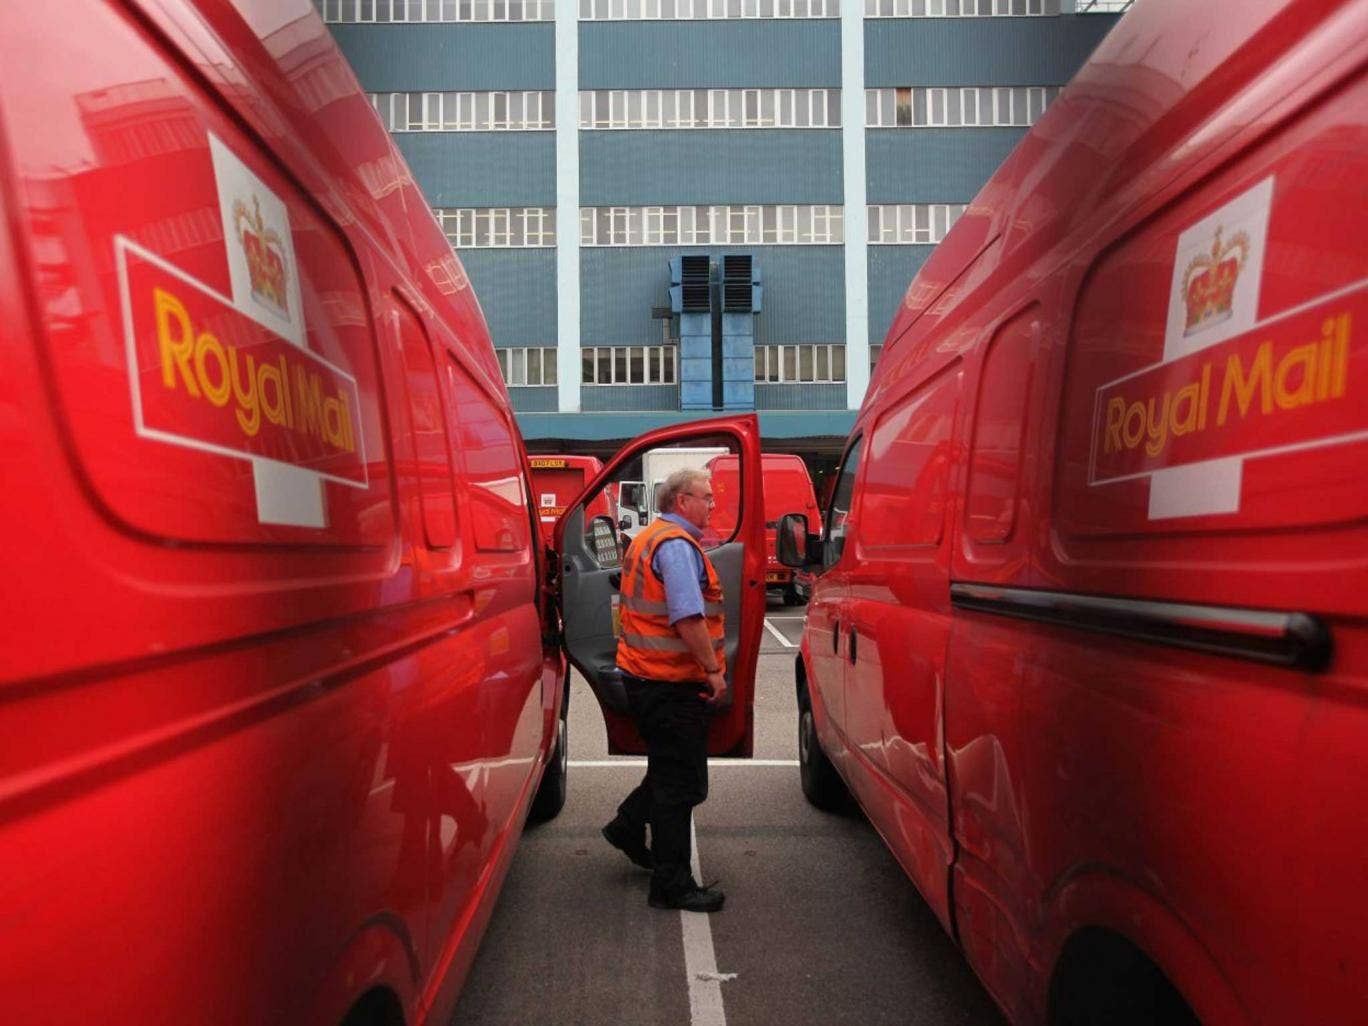 The privatisation of the Royal Mail was criticised by the National Audit office earlier this month